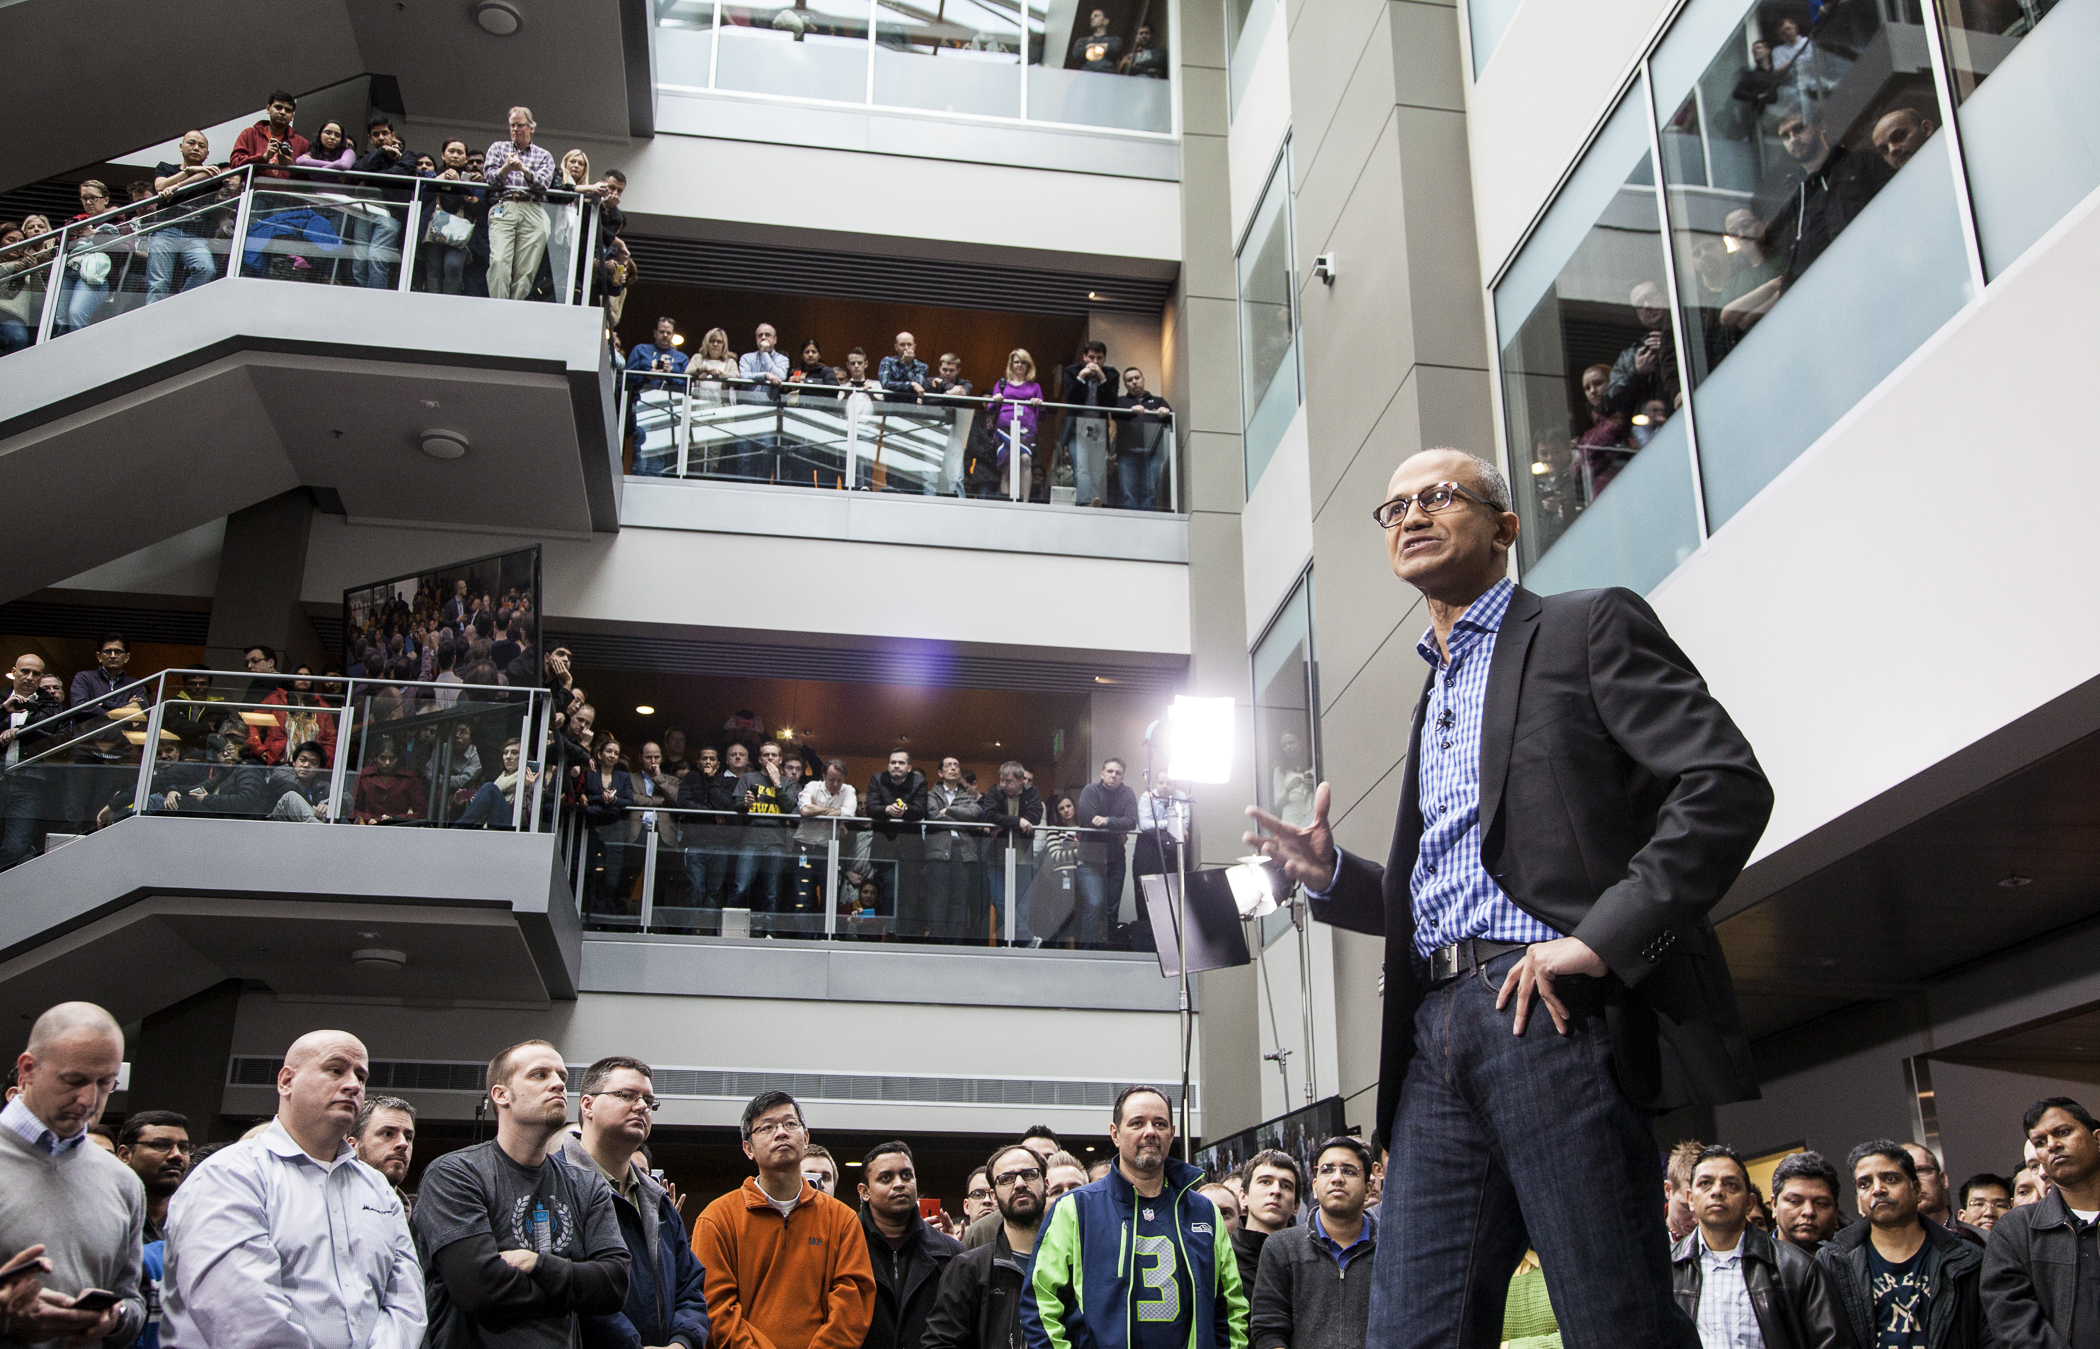 Satya Nadella just took over the reins at Microsoft earlier this year from now-Clippers owner Steve Ballmer, but he's already making his presence known through sizable layoffs and simultaneous acquisitions. Nadella's Microsoft has let go of nearly 15,000 employees this year — a chunk of whom were made redundant when Microsoft closed an approximately $7.2 billion deal for Nokia's device wing. Also on Microsoft's tab? $2.5 billion for the Swedish gaming company behind top-hit Minecraft.